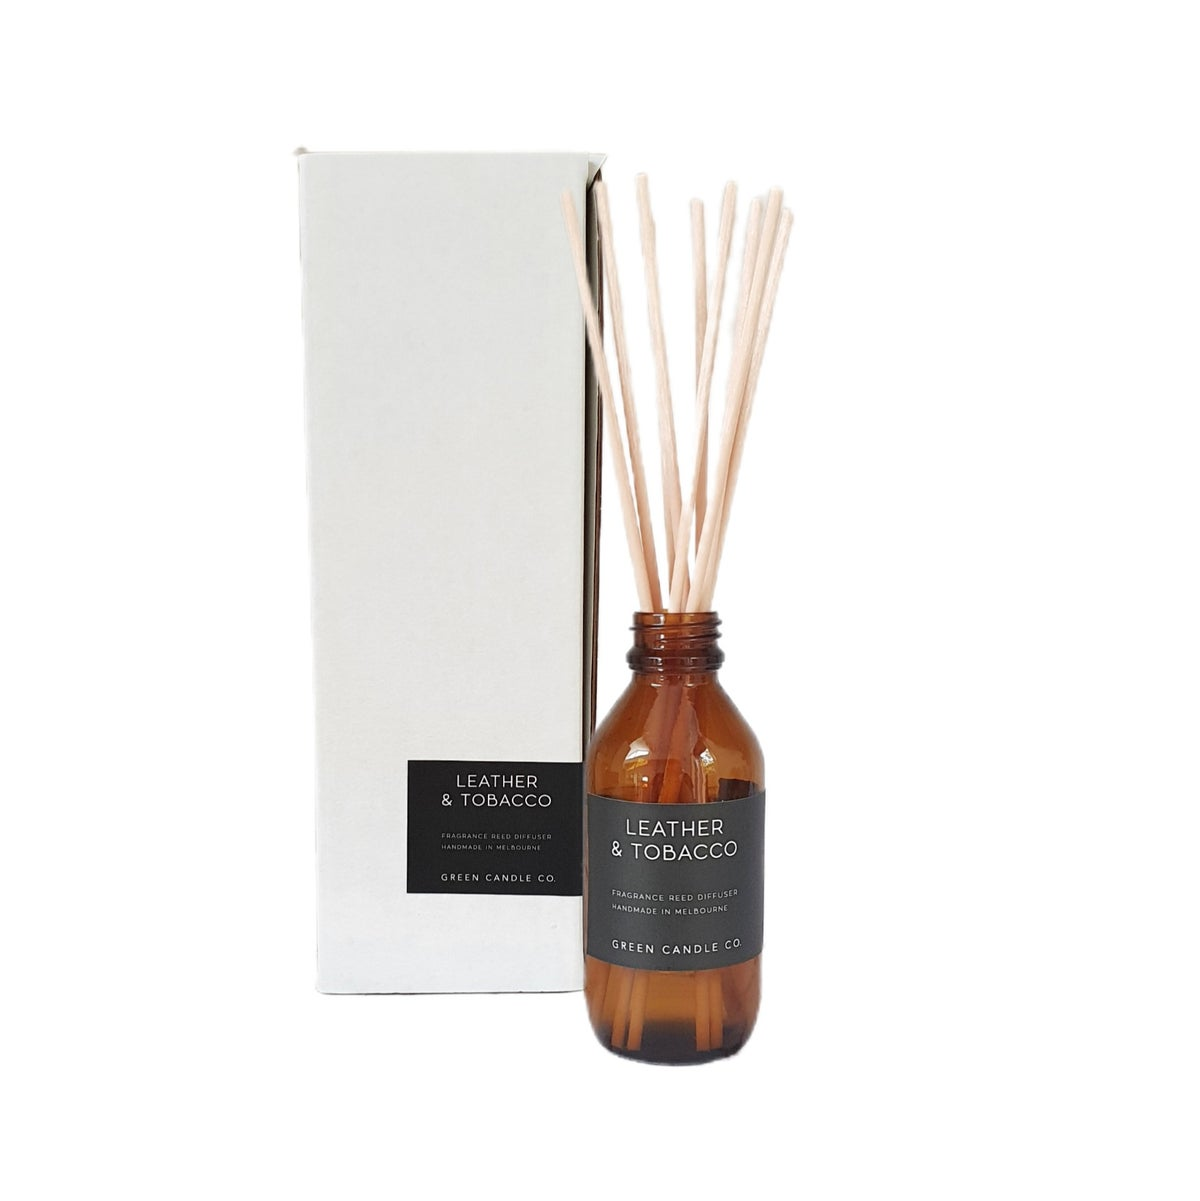 Image of LEATHER & TOBACCO / Reed Diffuser